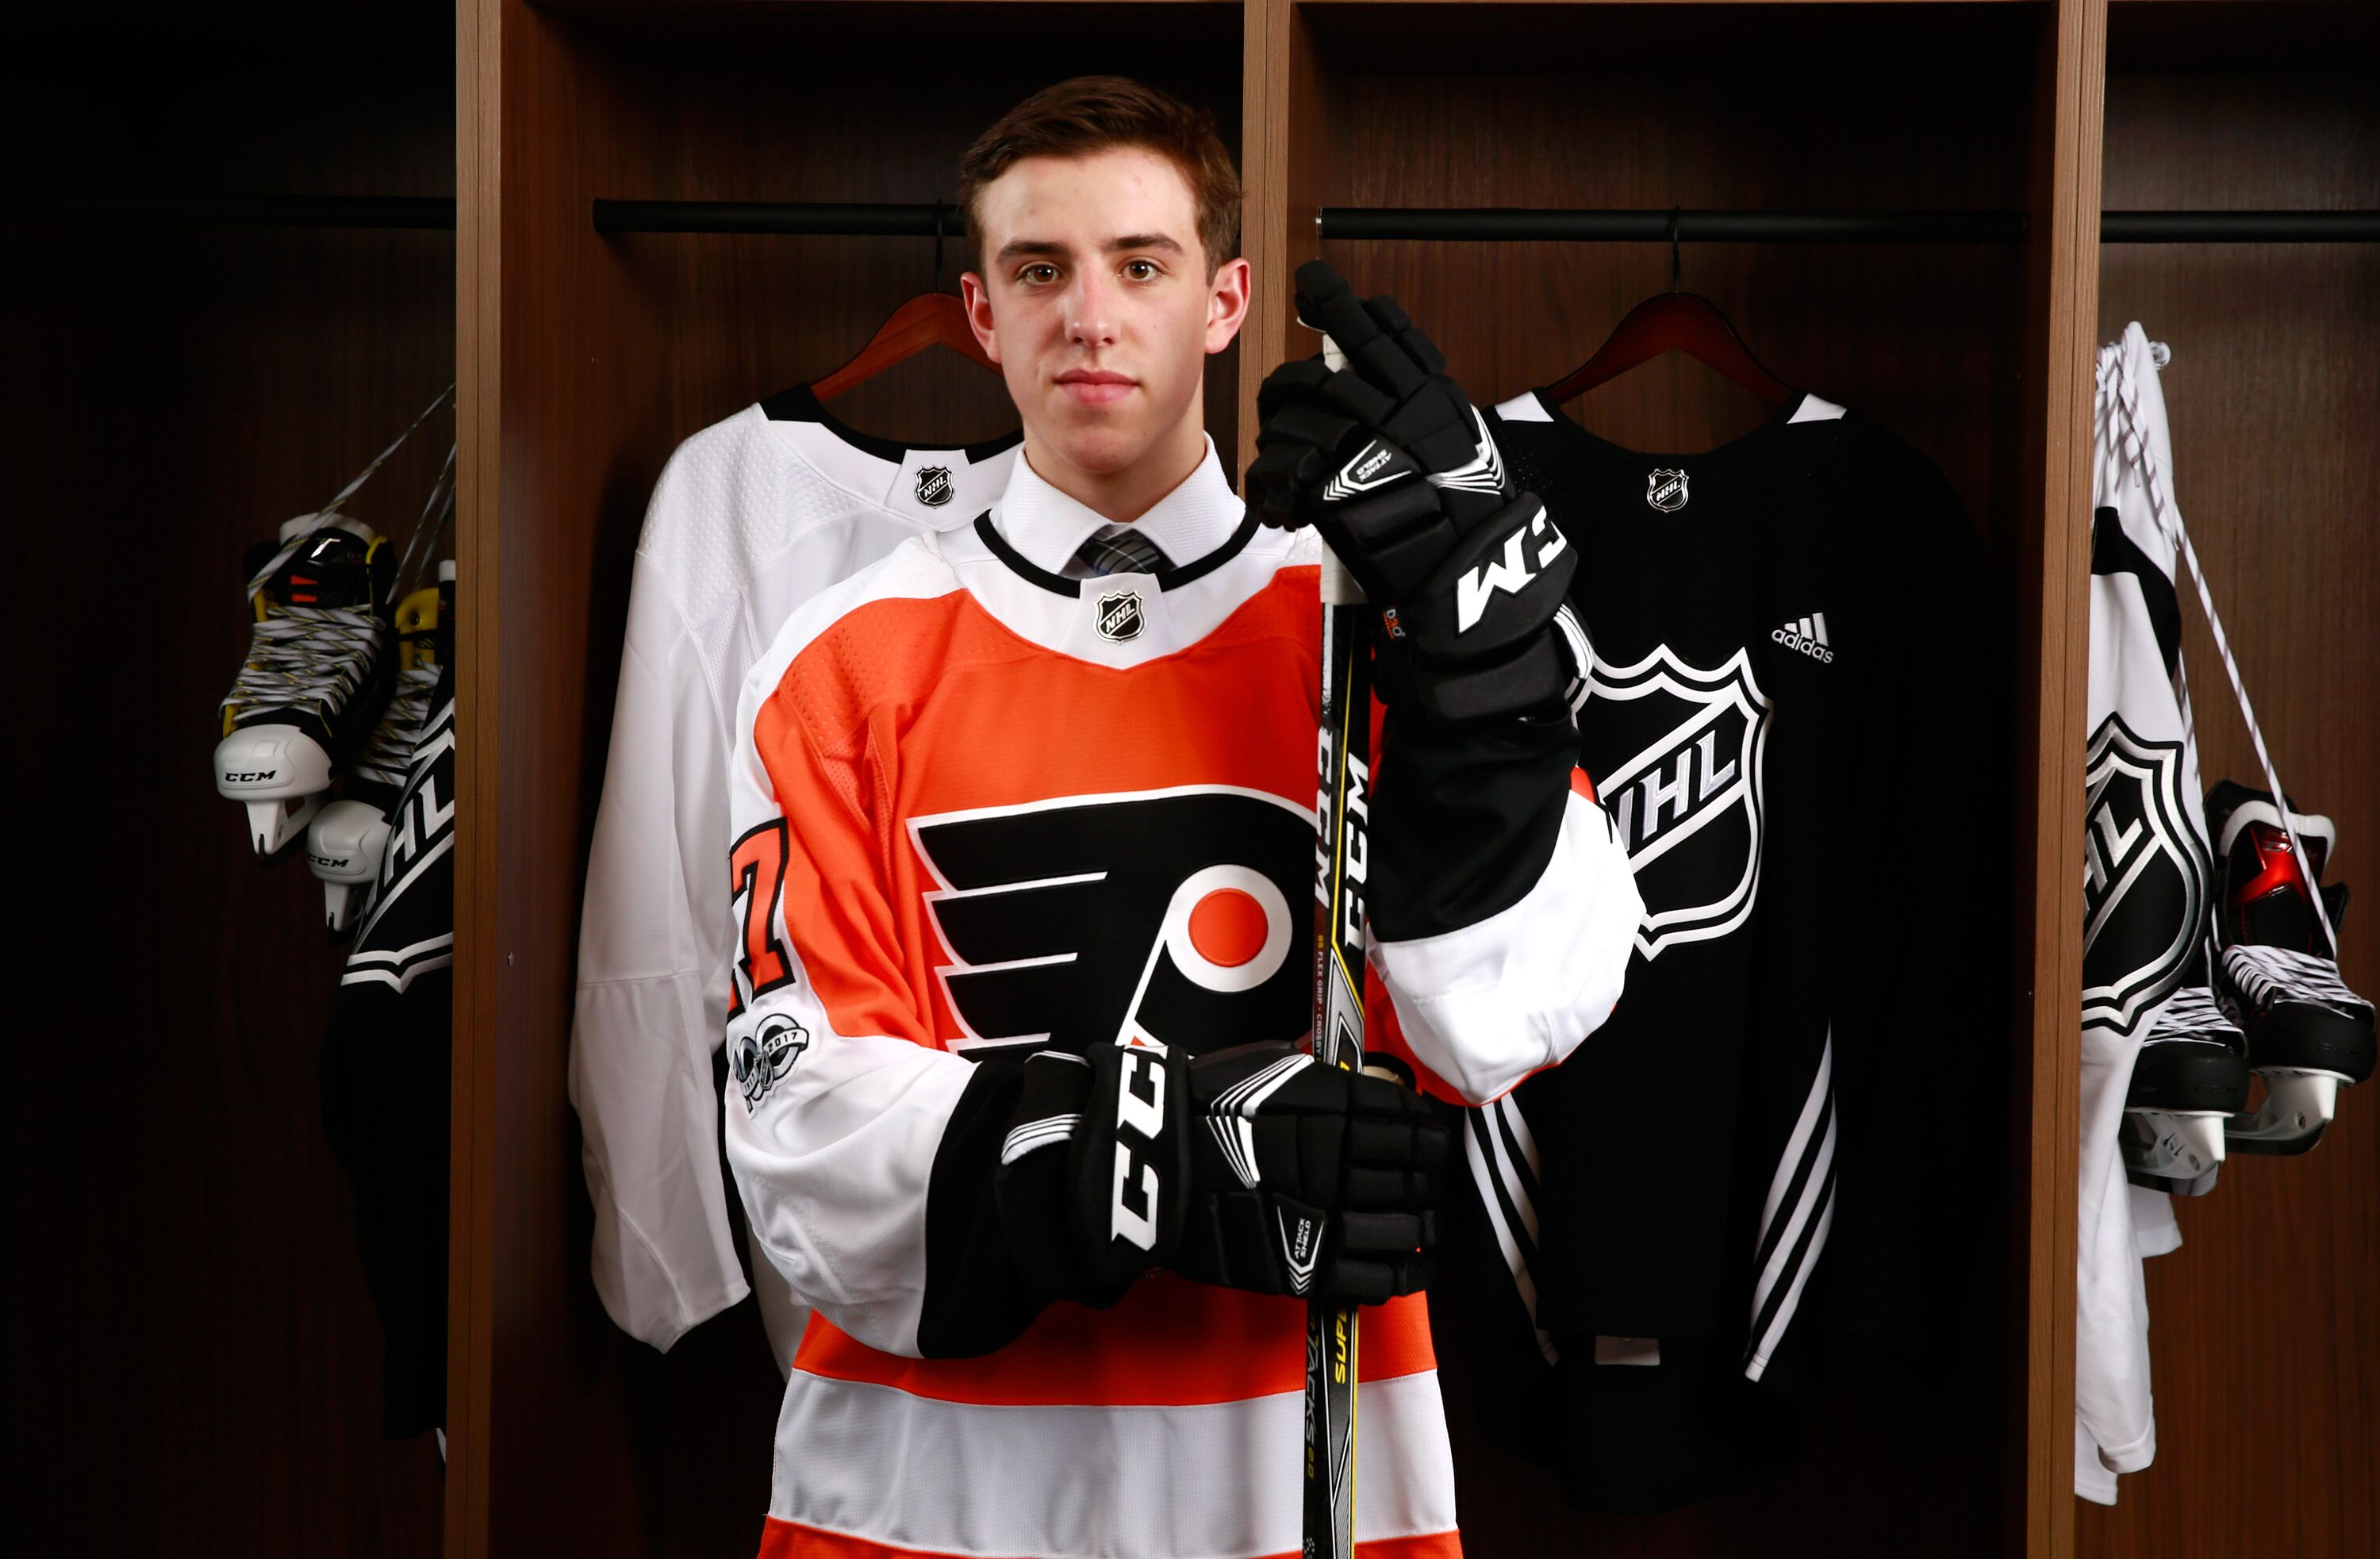 flyers 09-10 roster